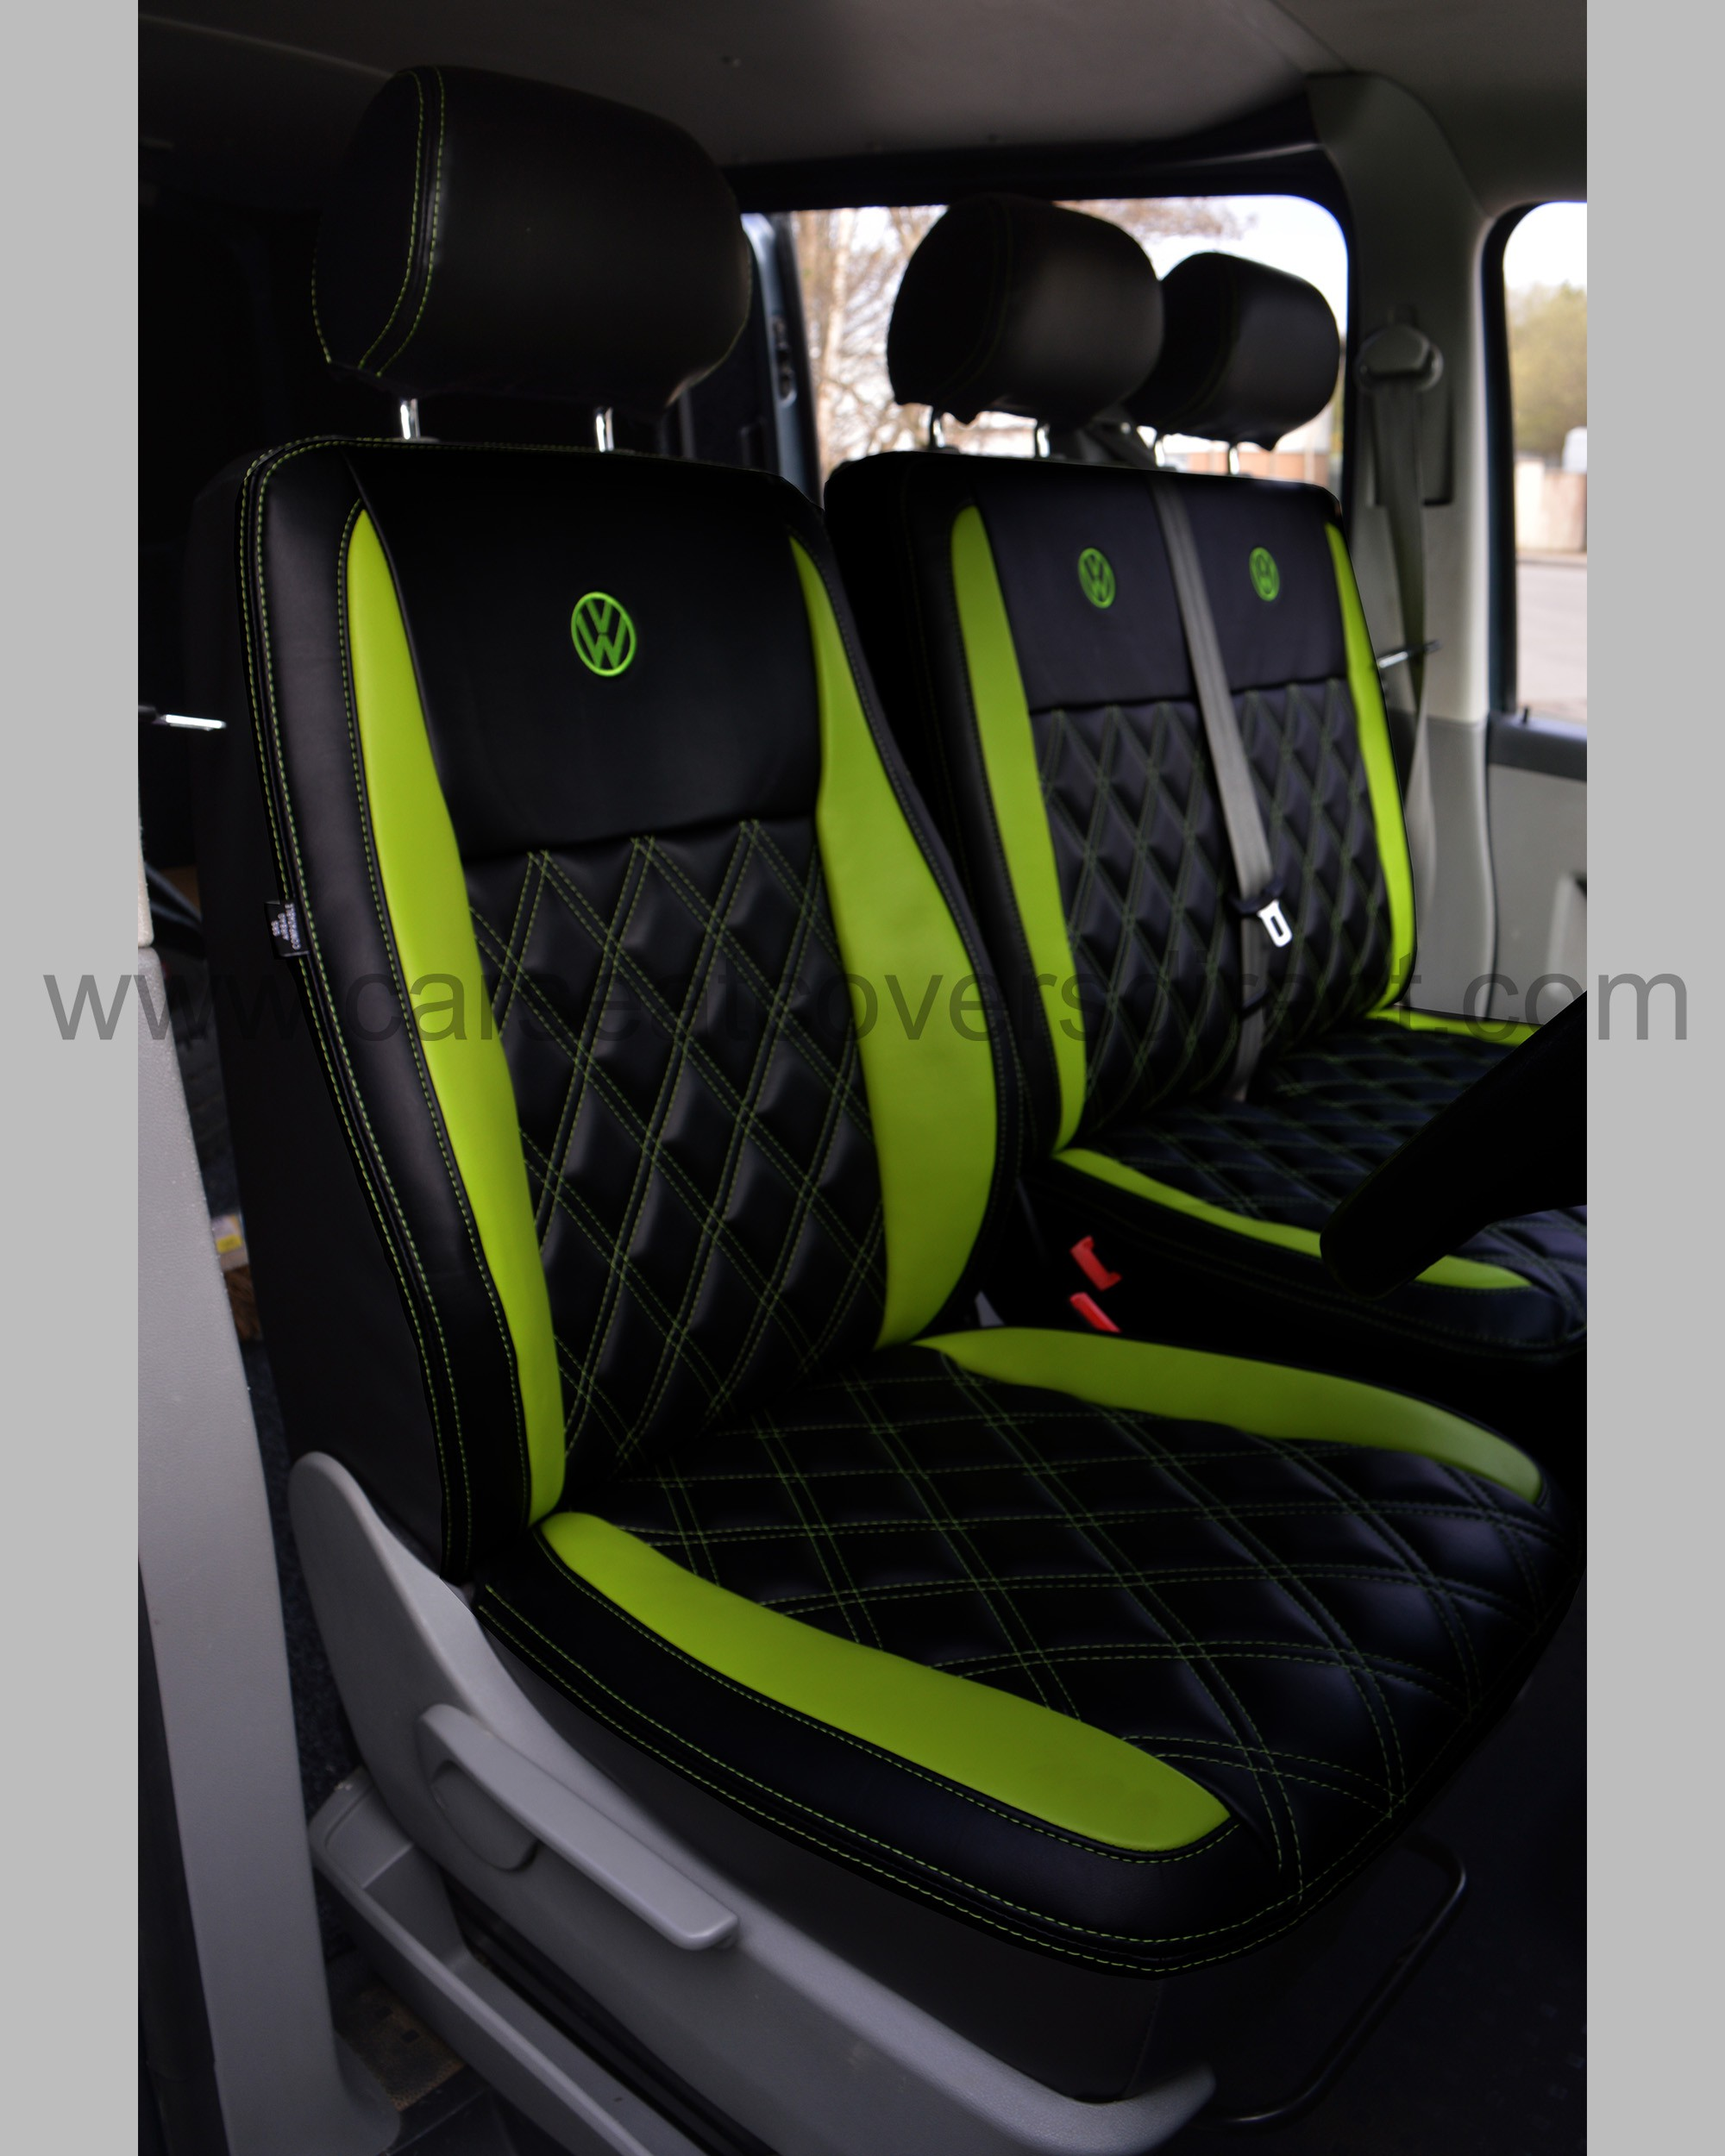 VW T5 Seat Covers - Black & Green Car Seat Covers Direct ...